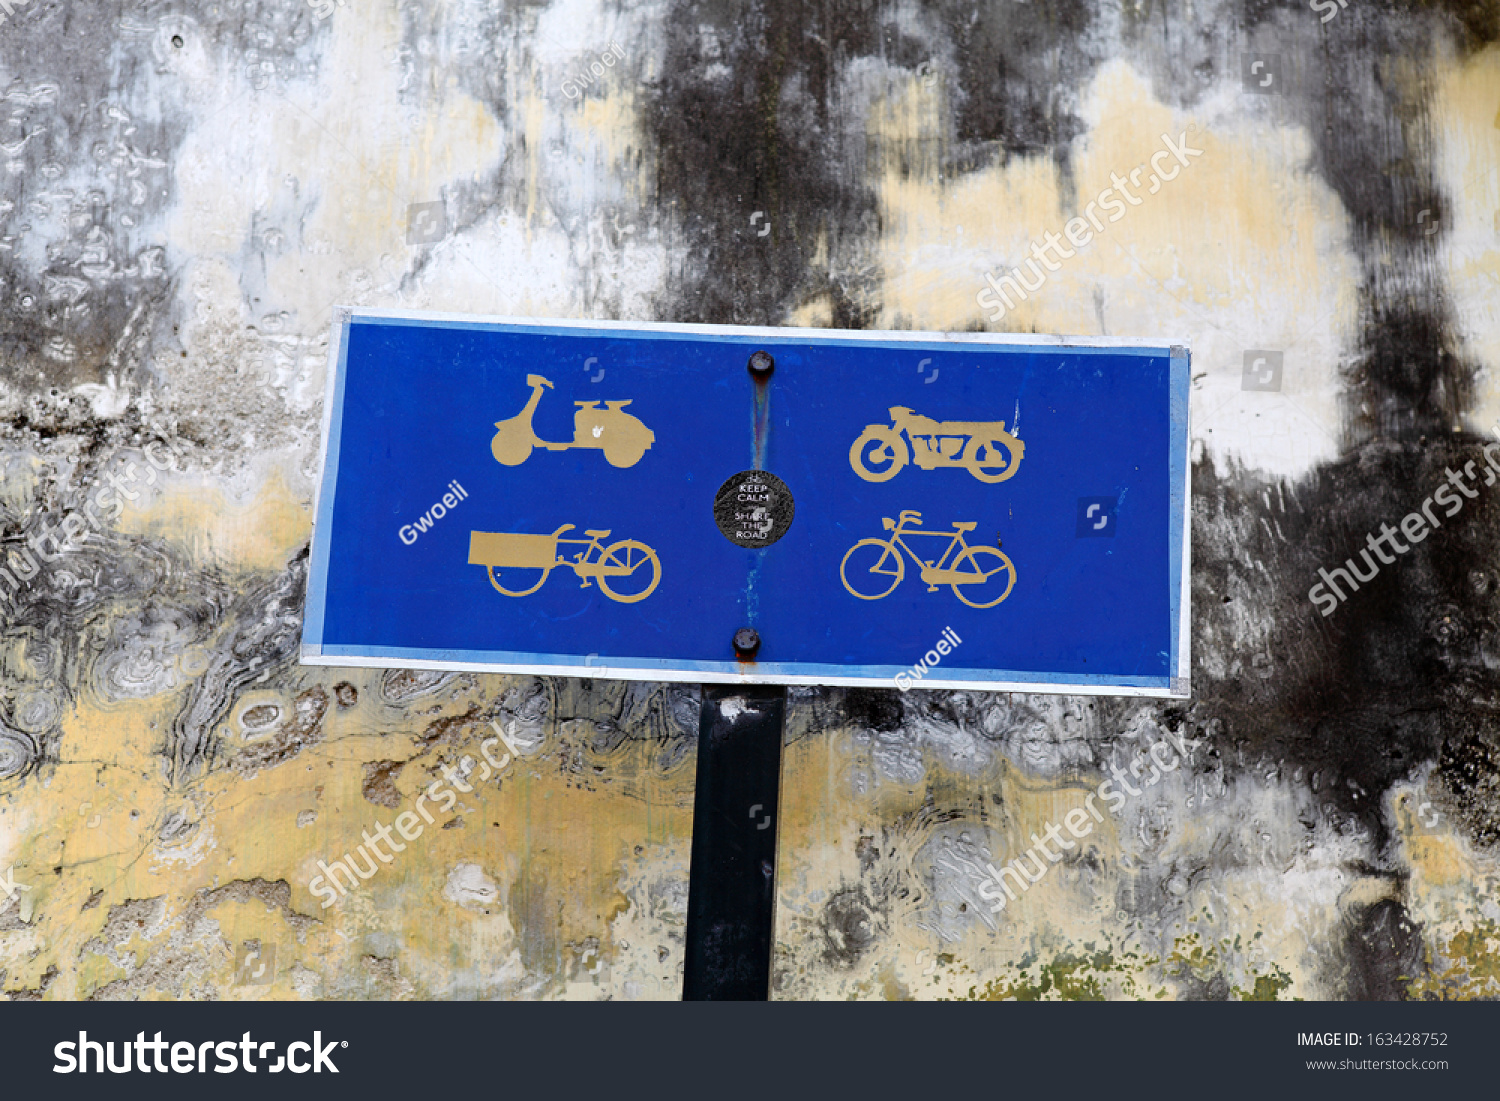 Royalty Free A Metal Road Sign With Symbols Of A 163428752 Stock